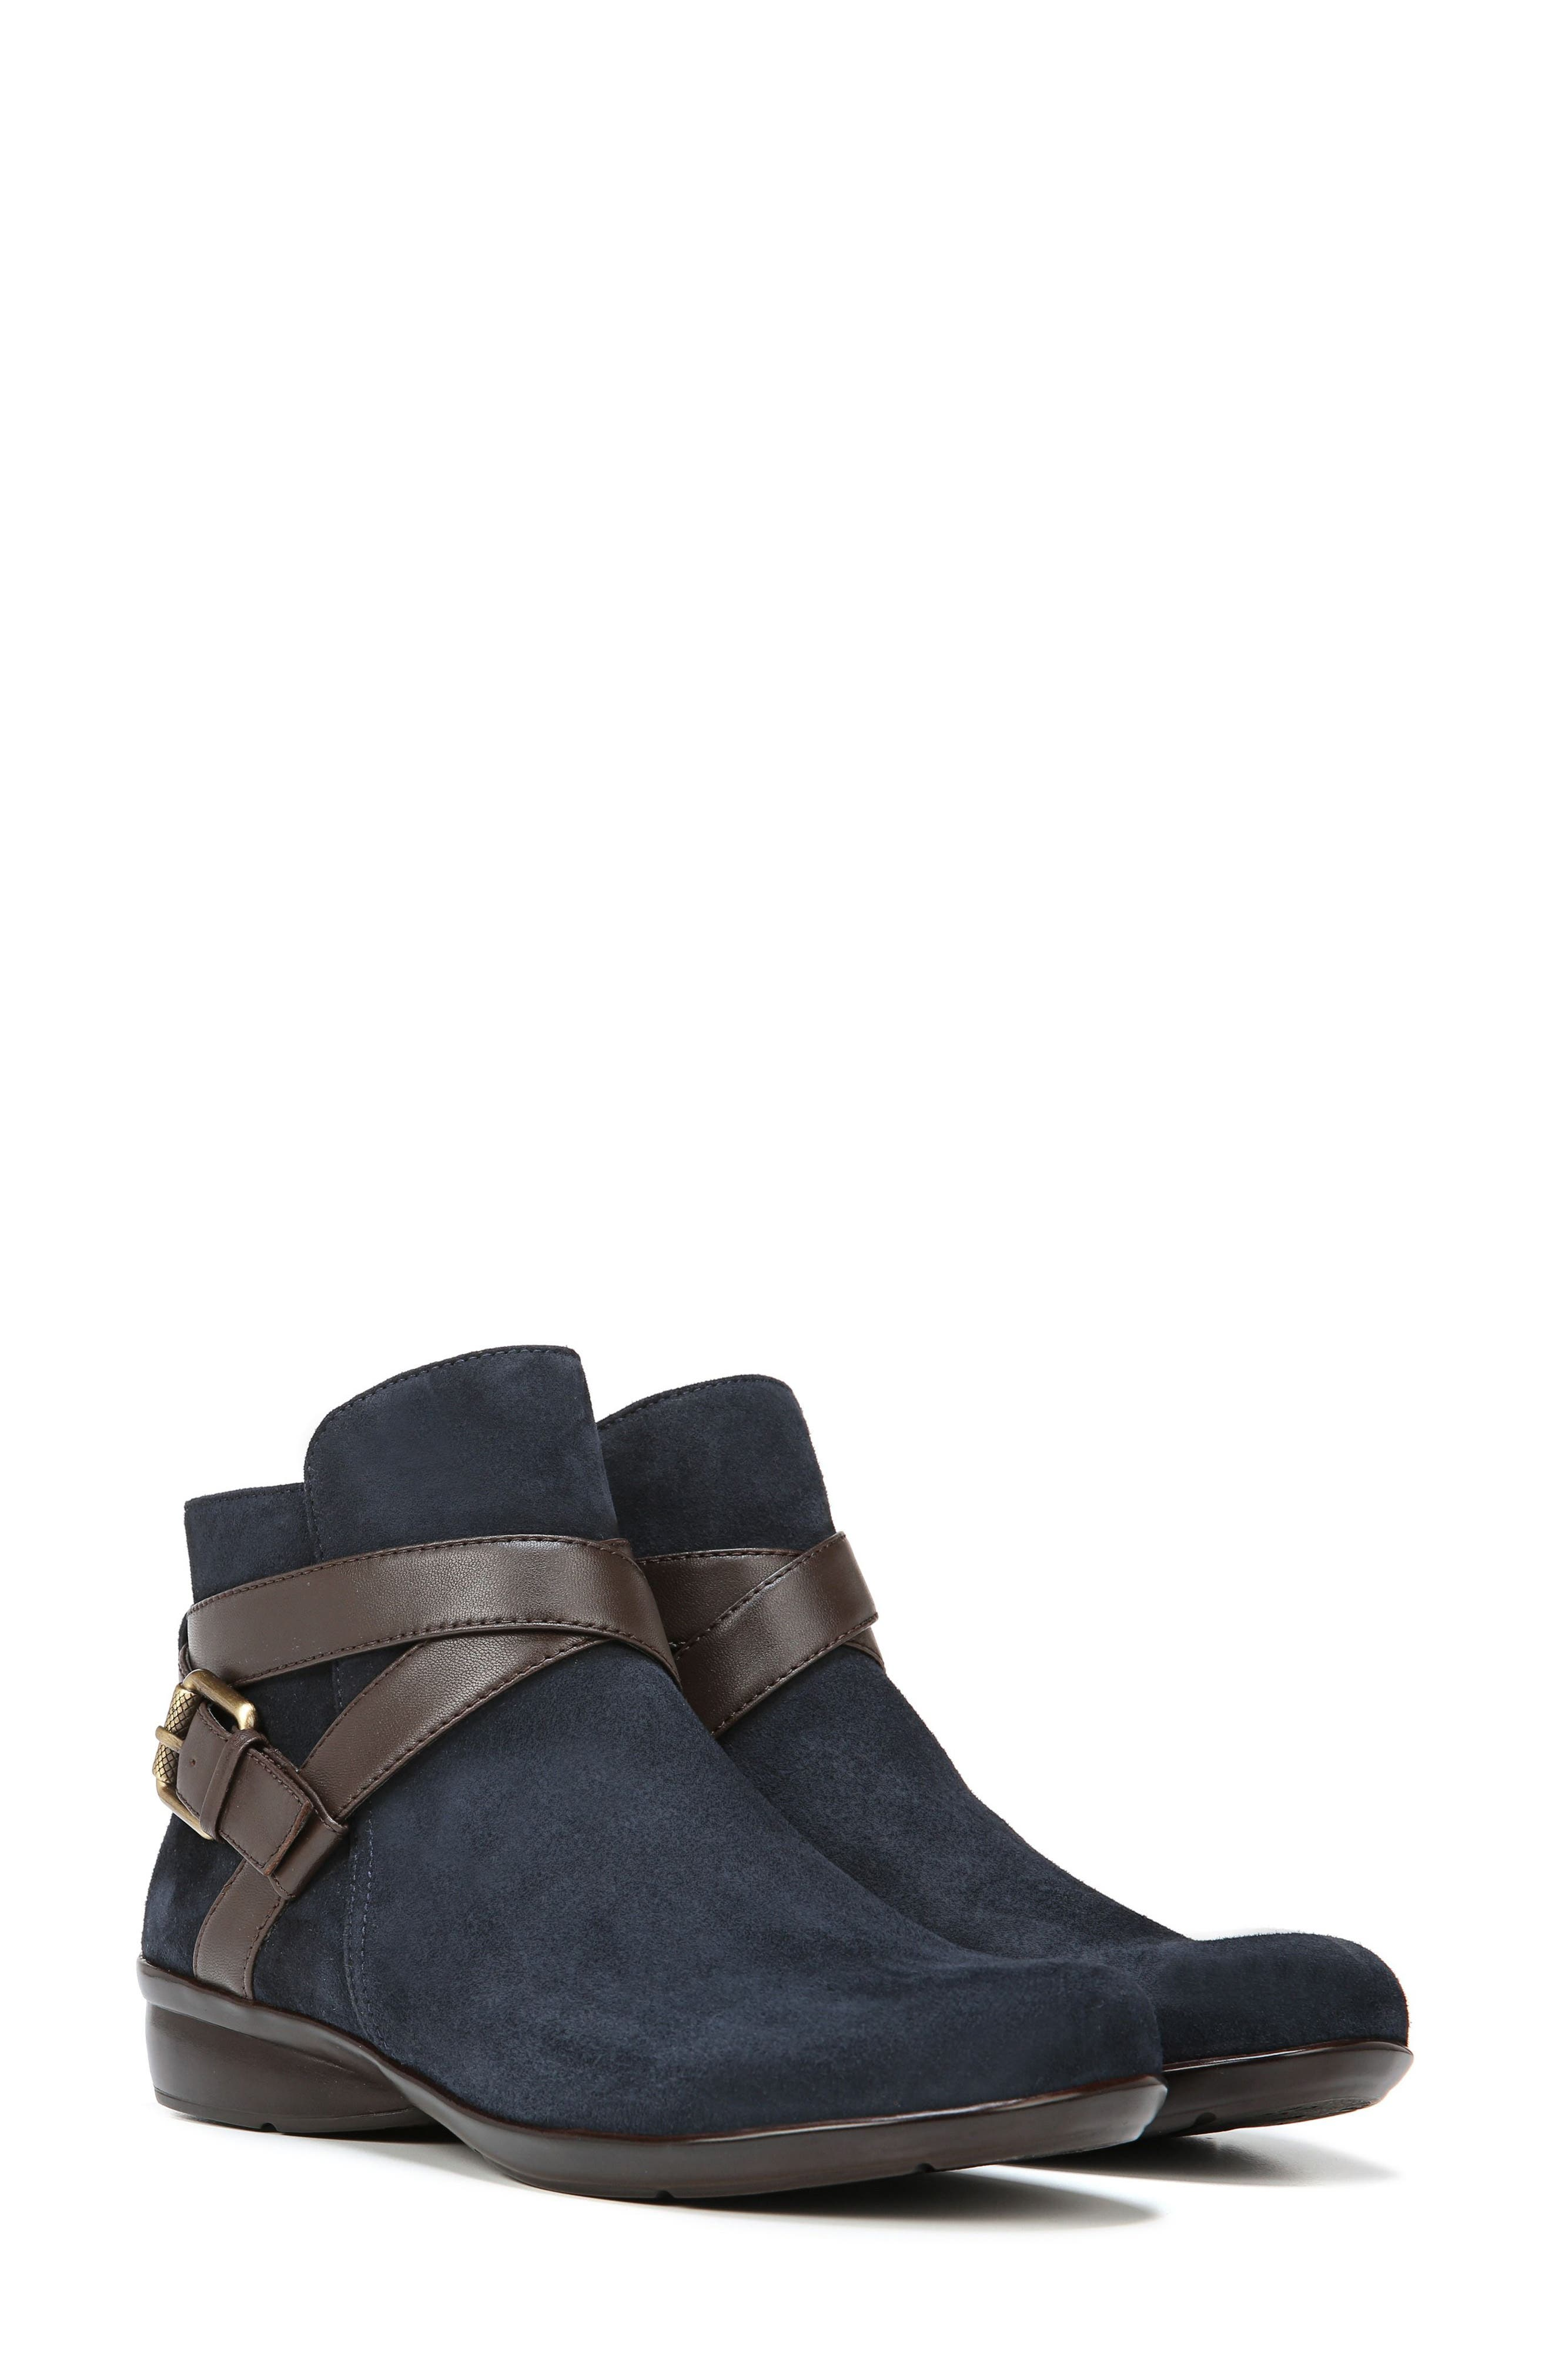 Cassandra Buckle Strap Bootie,                             Alternate thumbnail 9, color,                             NAVY/ BROWN SUEDE